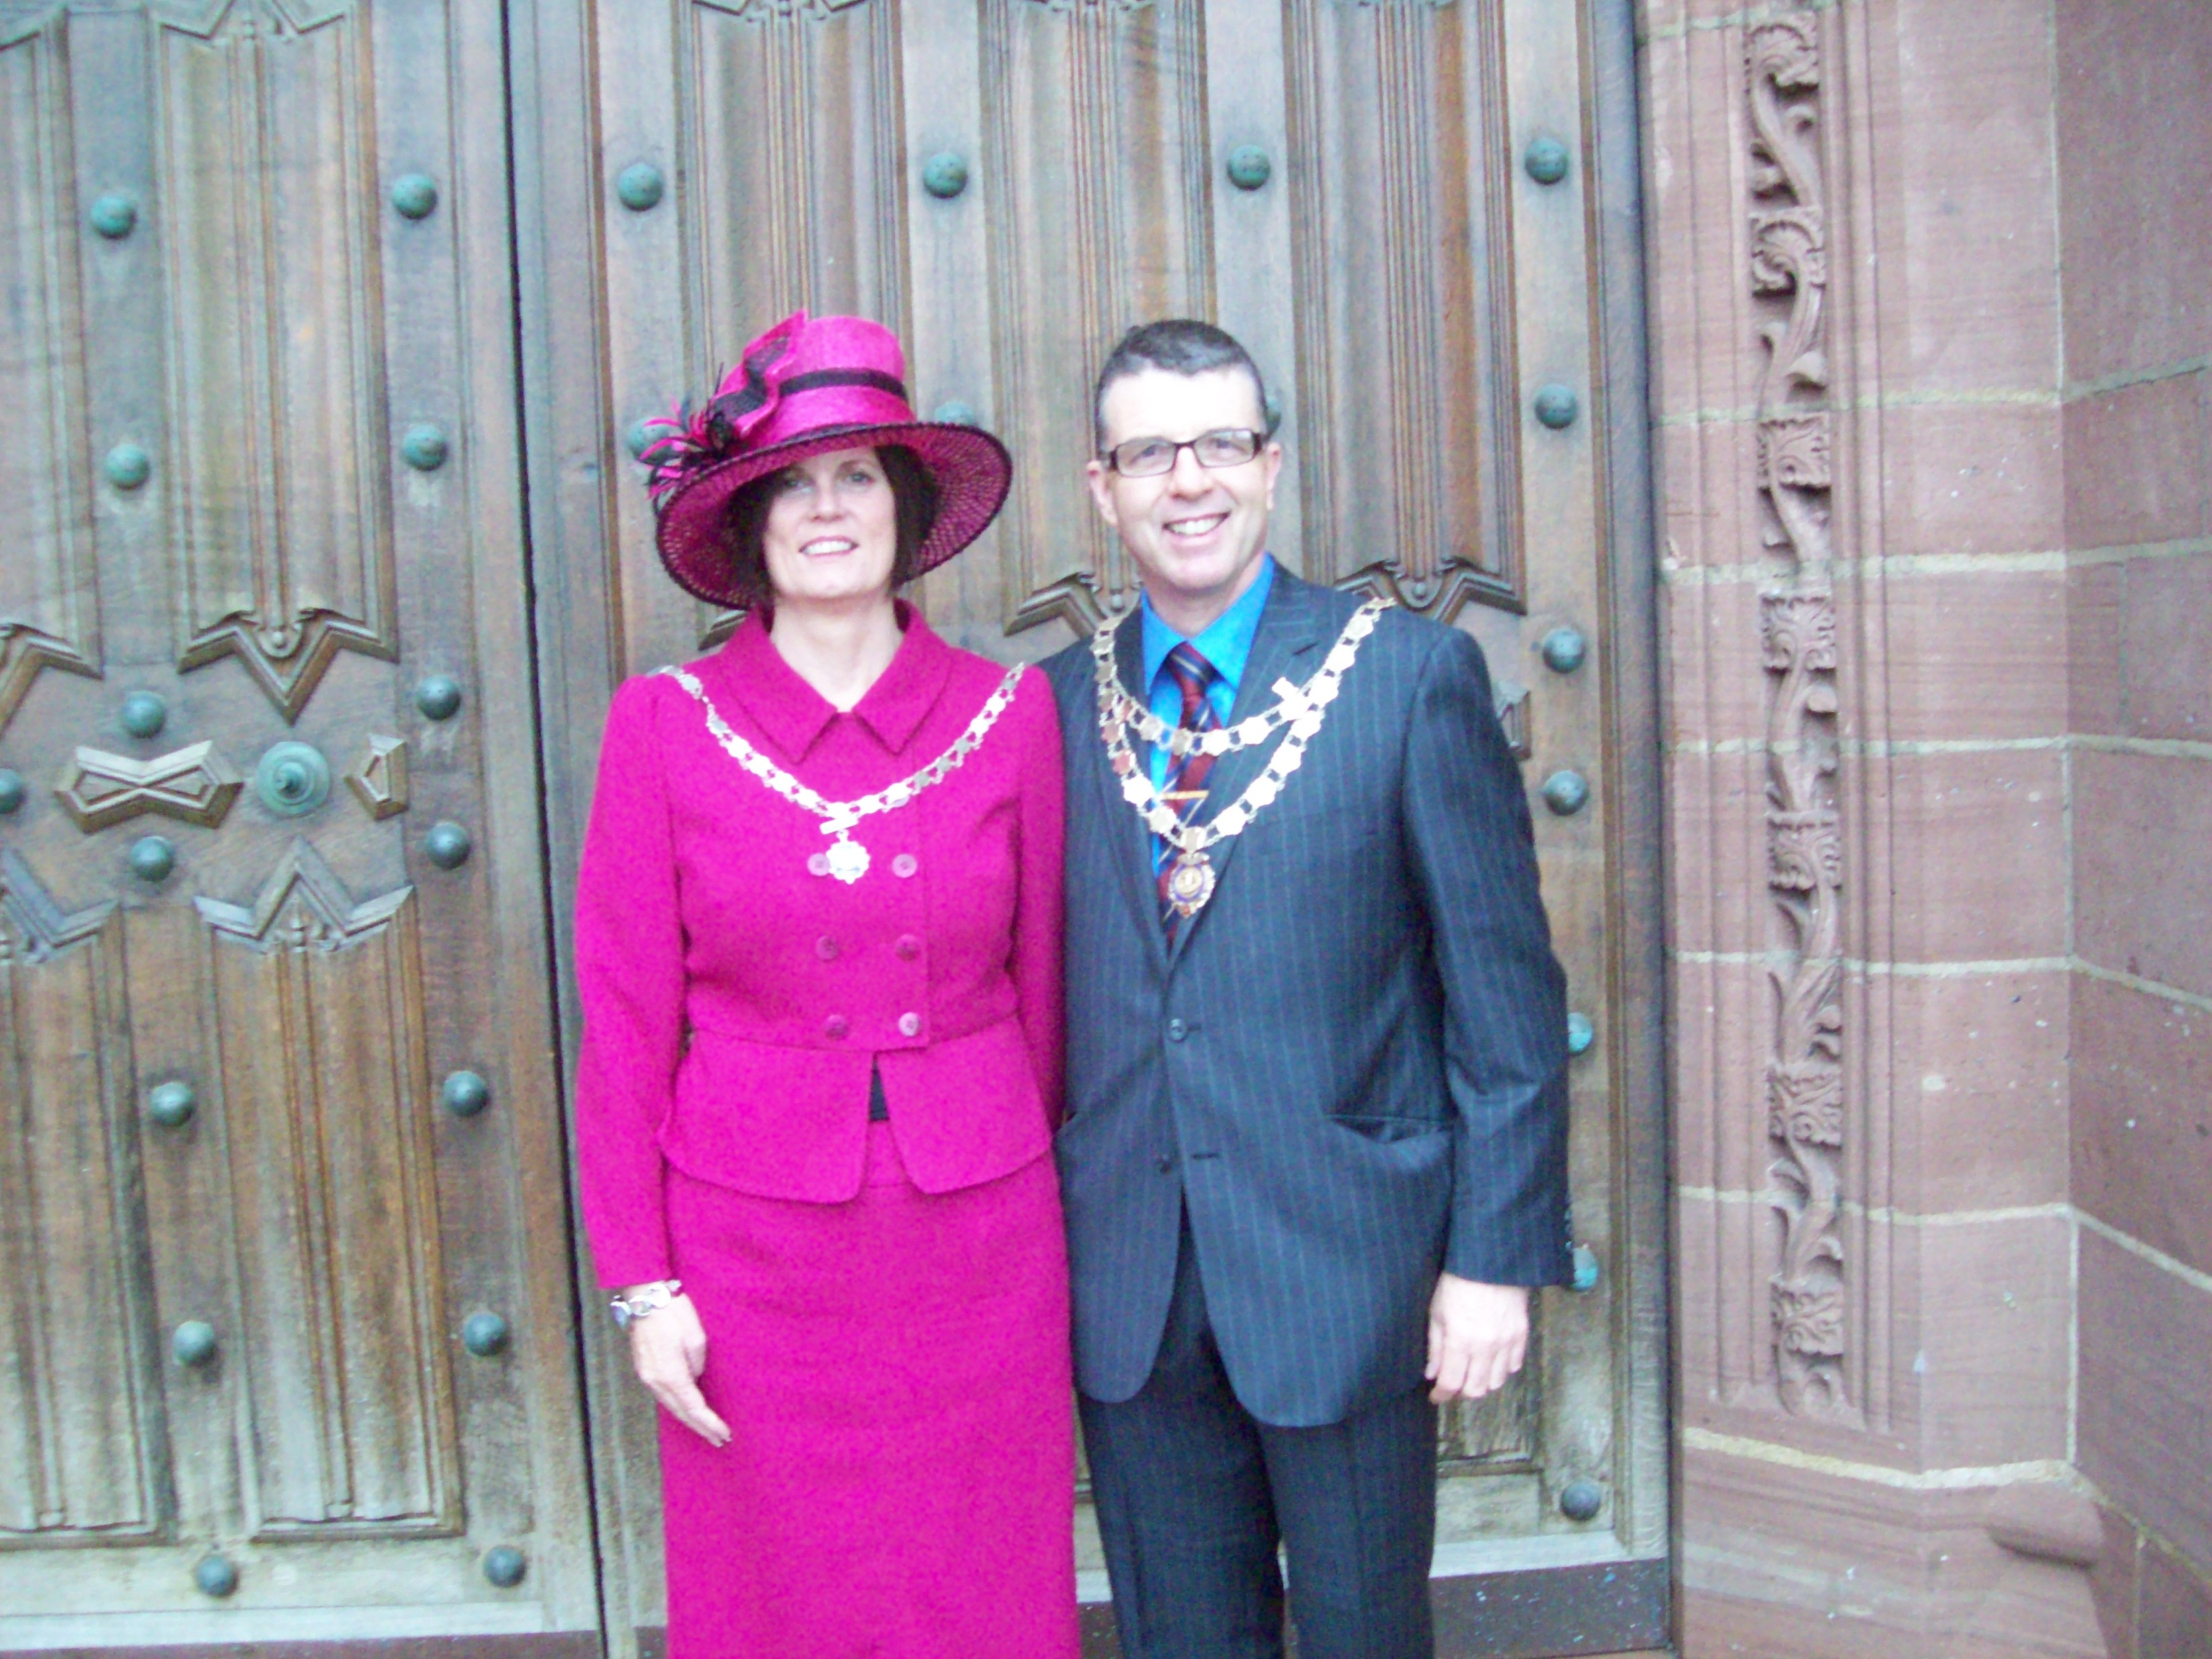 Mayor and Mayoress of Maghull, Labour's Cllrs Steve and Gwen Kermode at Liverpool Cathedral for the Amred Forces Day Service.